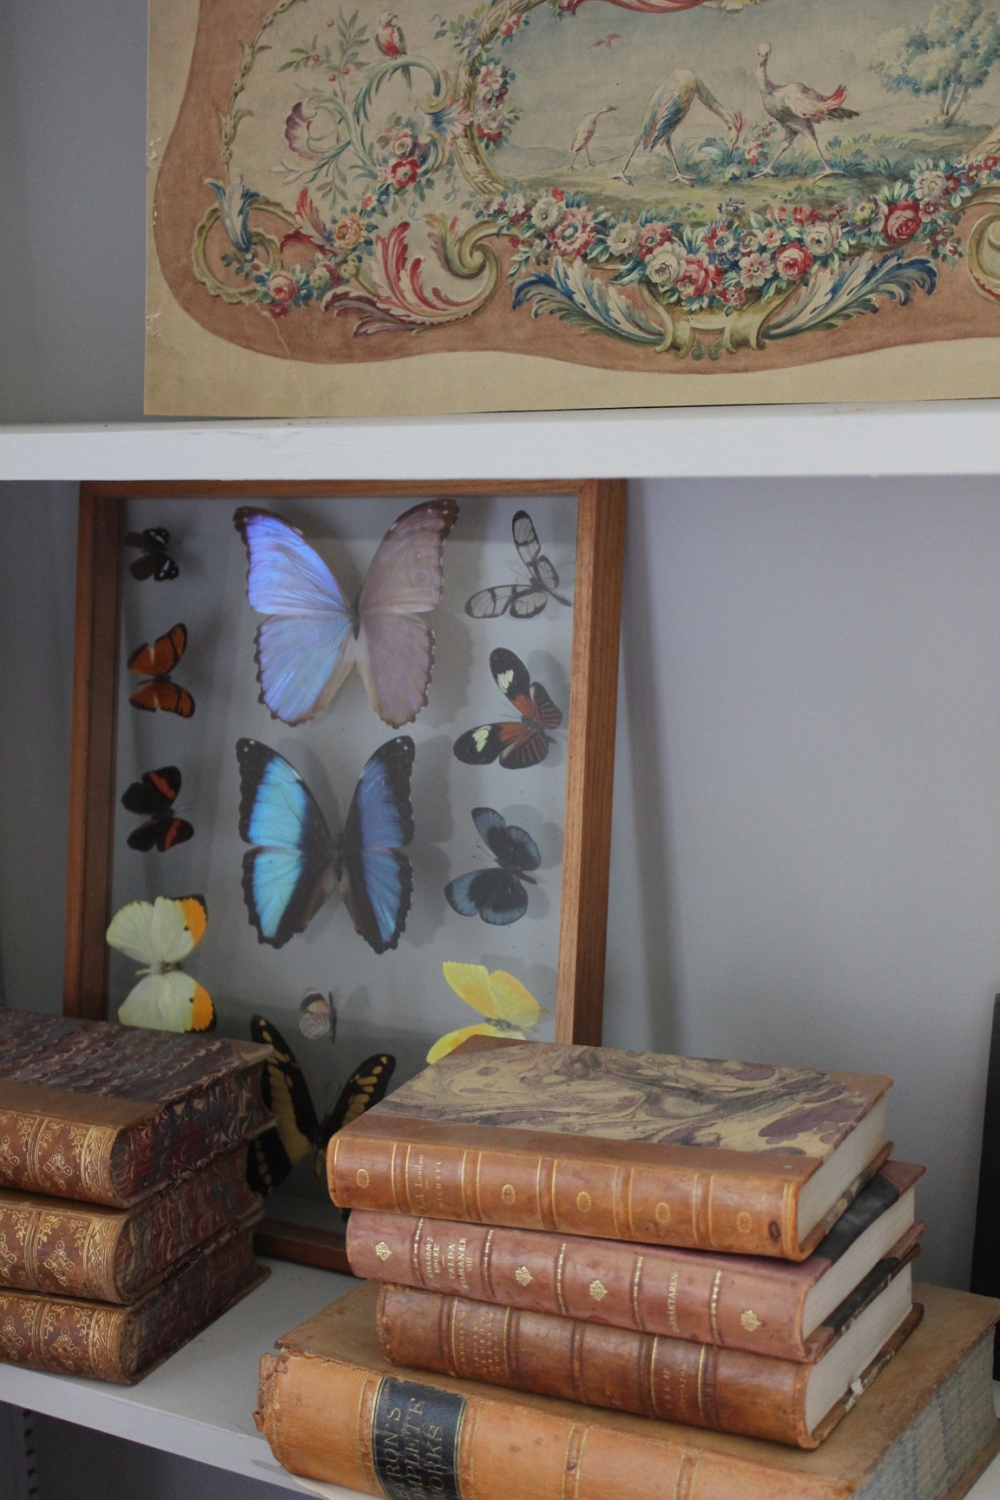 Old books and butterflies